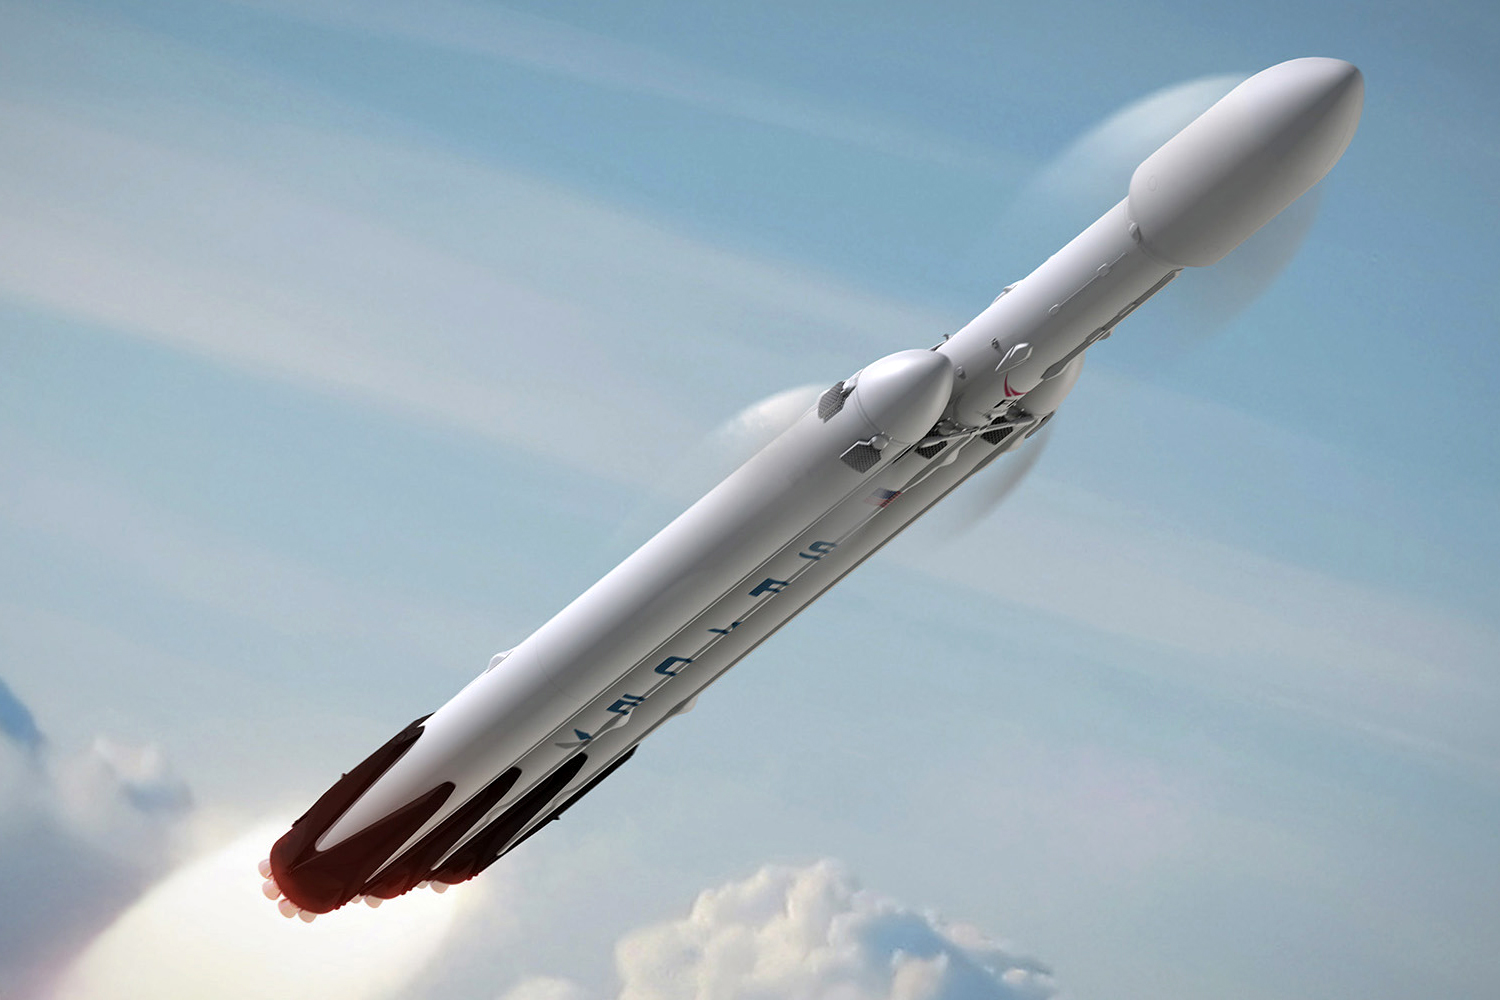 spacex falcon heavy rocket - photo #17